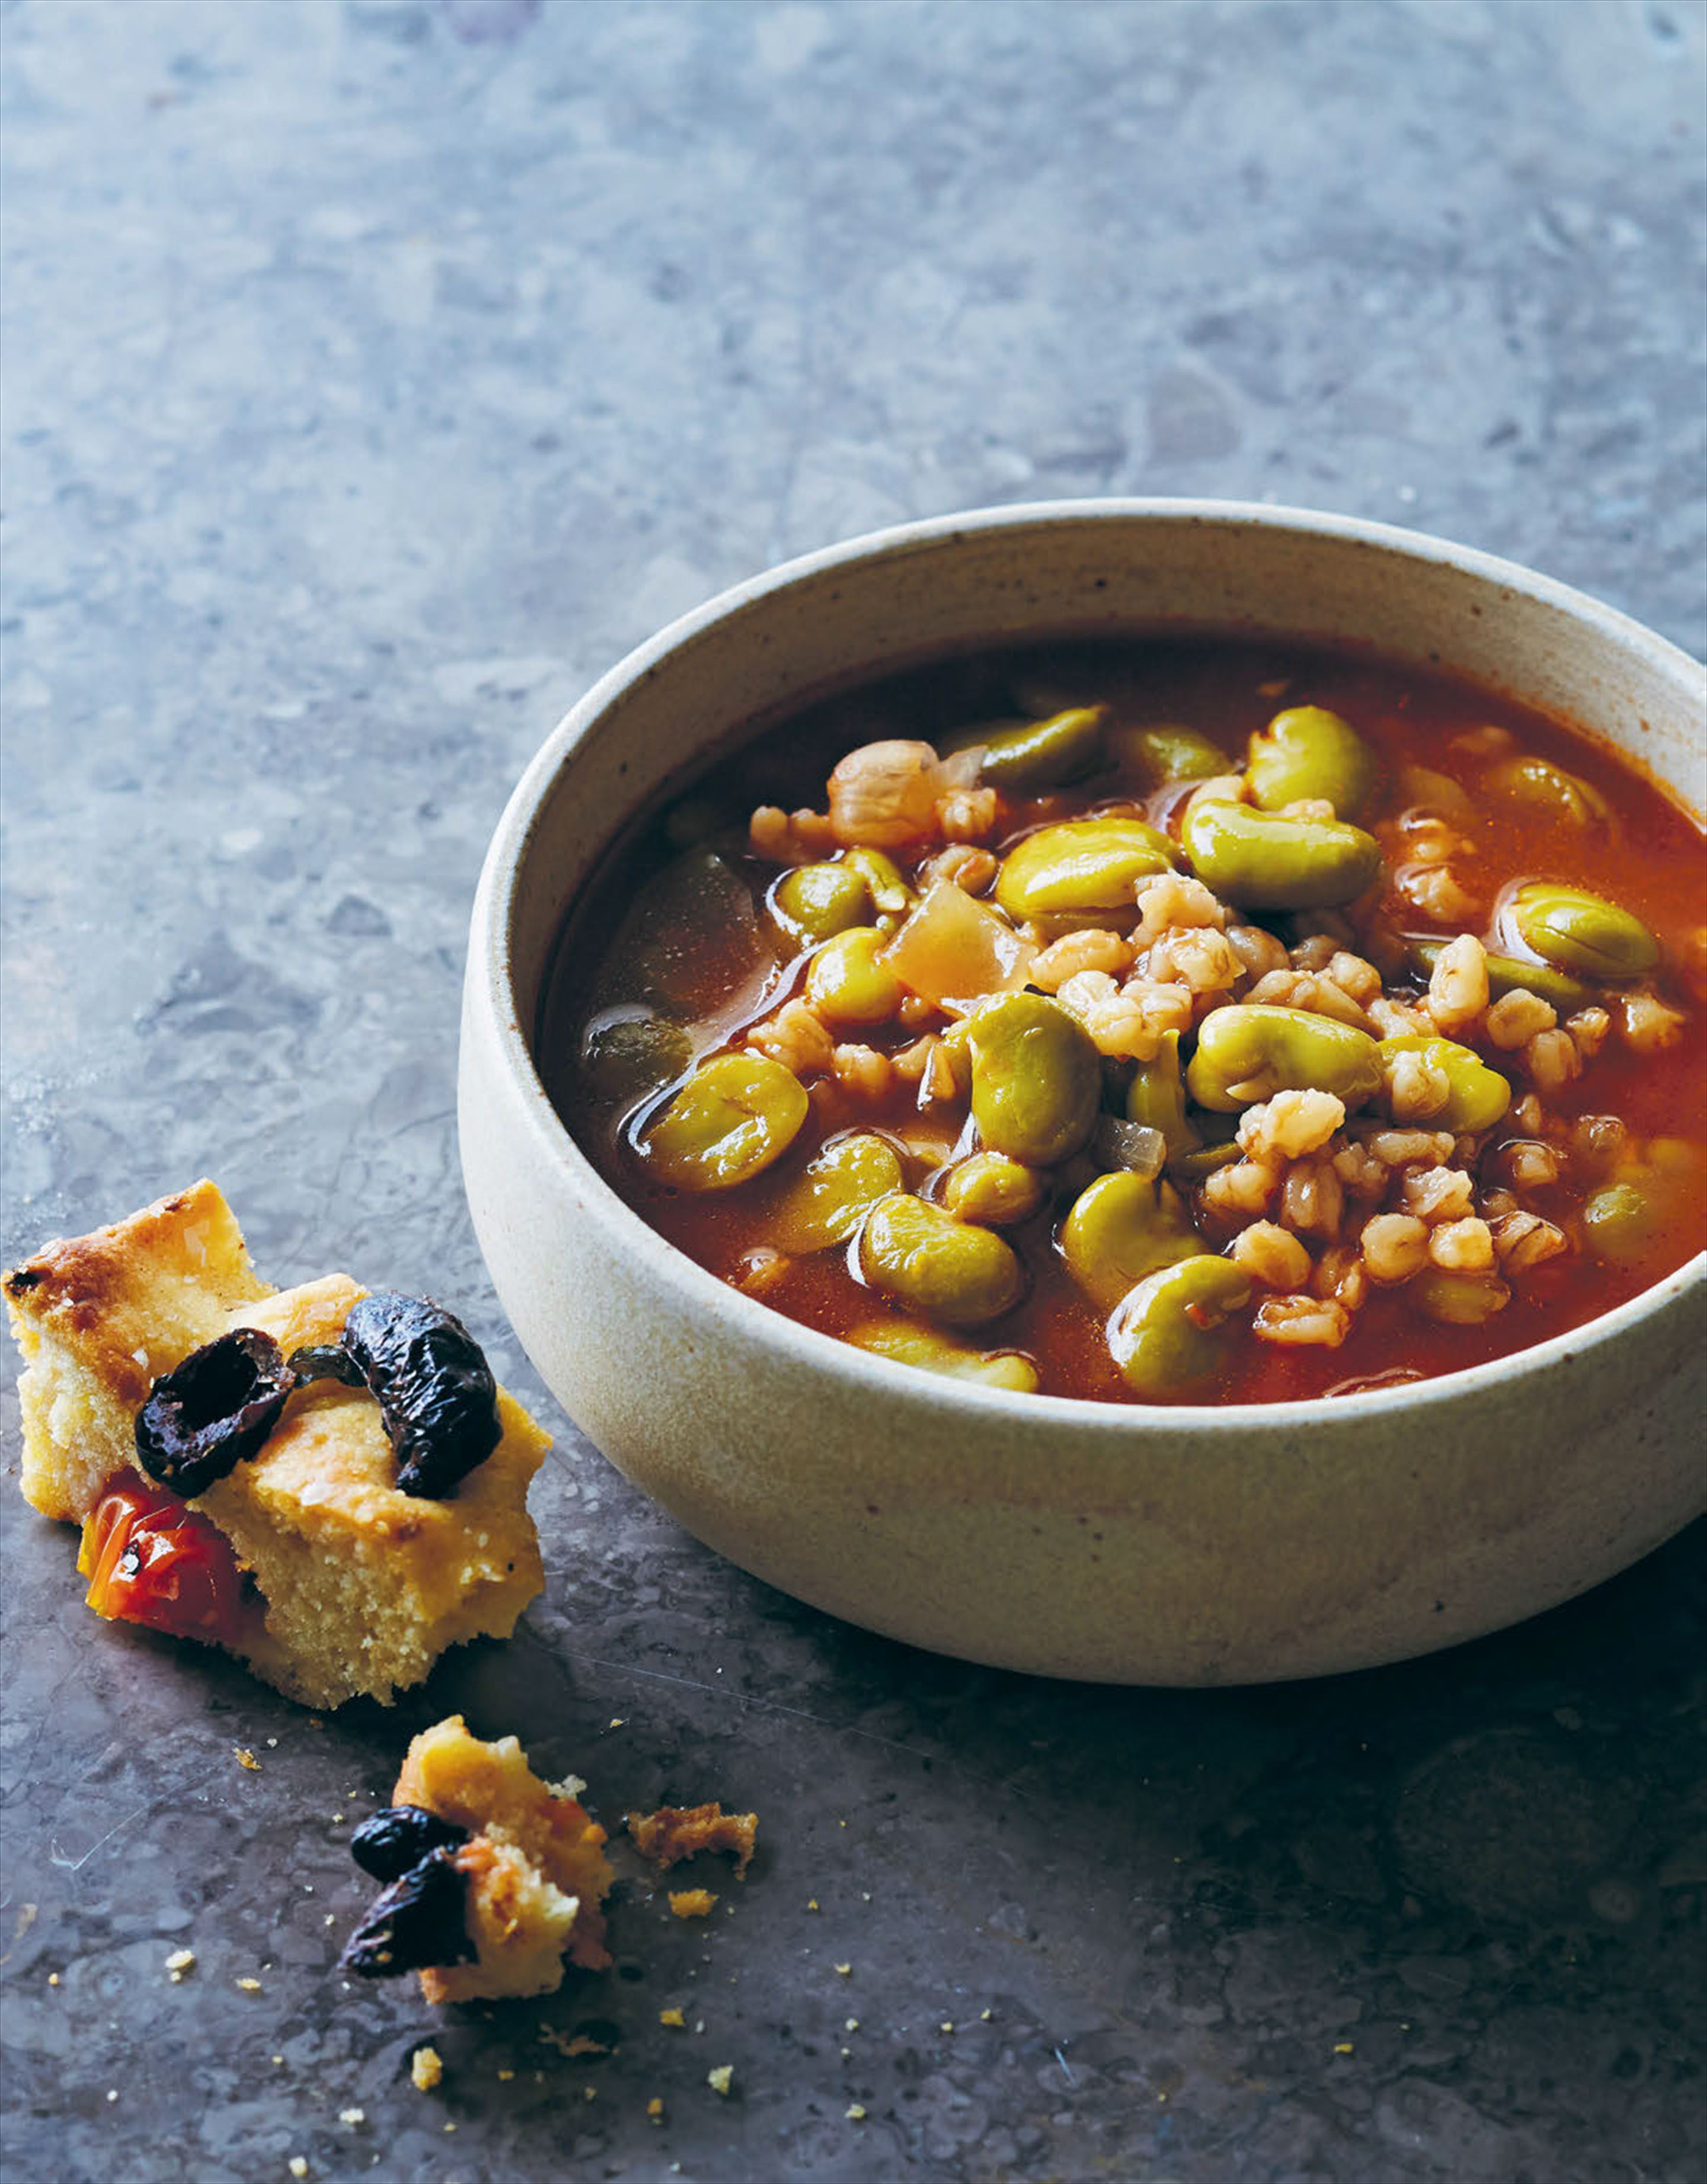 Broad bean soup